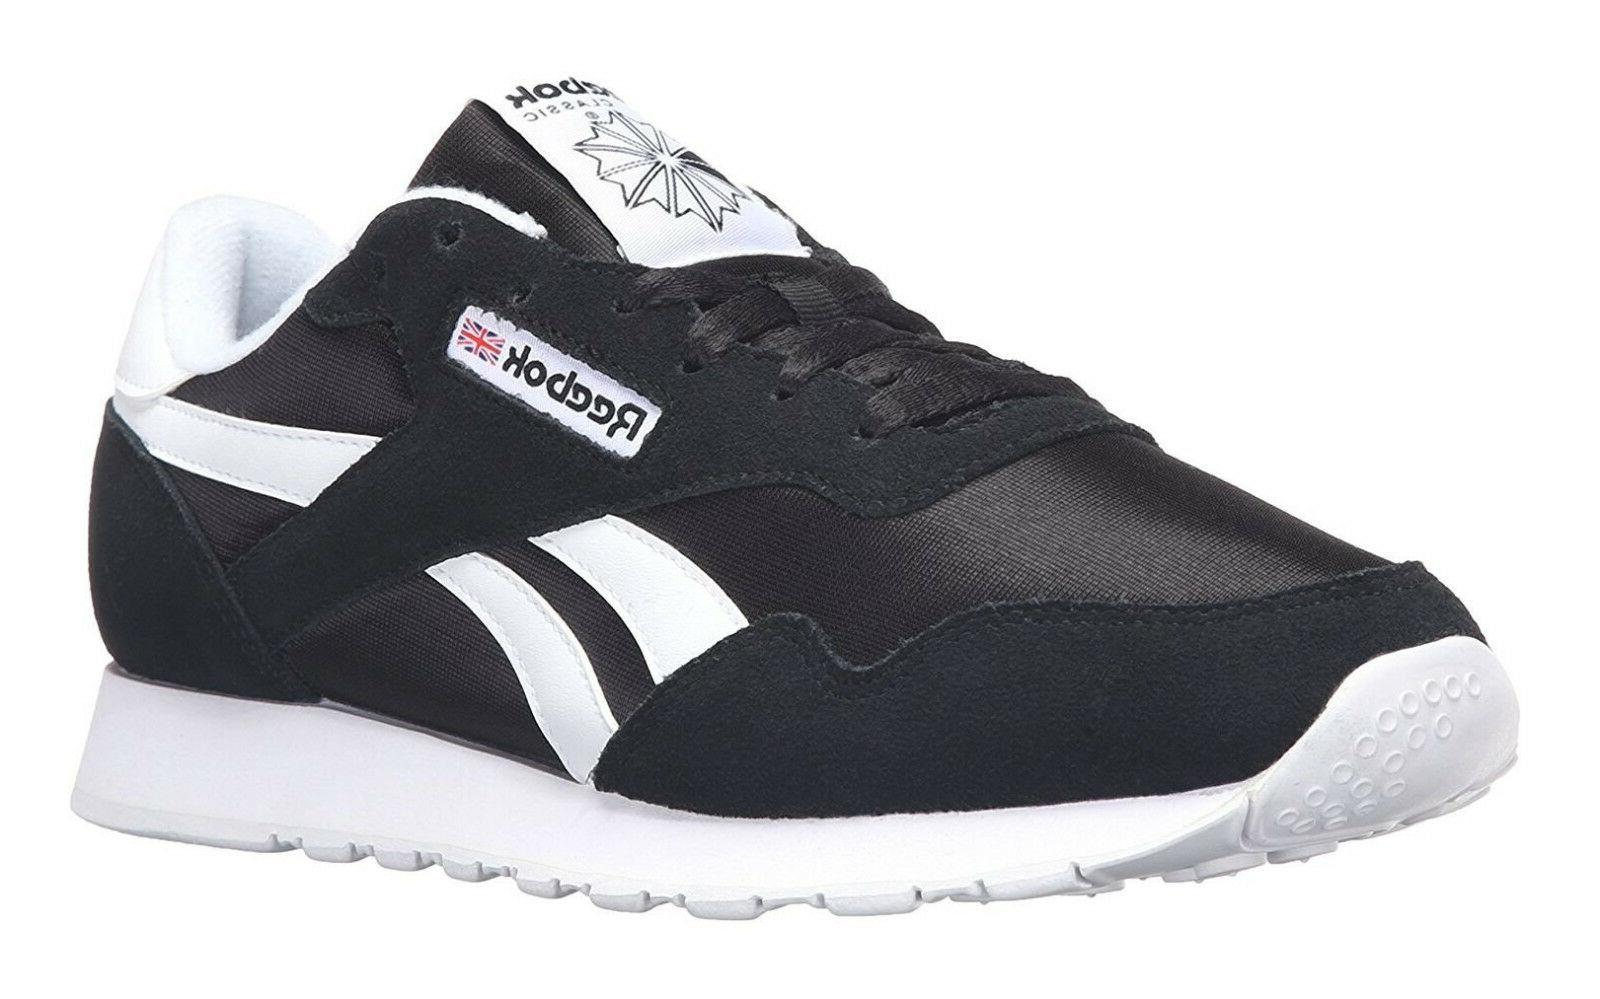 Reebok Classic Nylon Black White Mens Running Tennis Shoes I